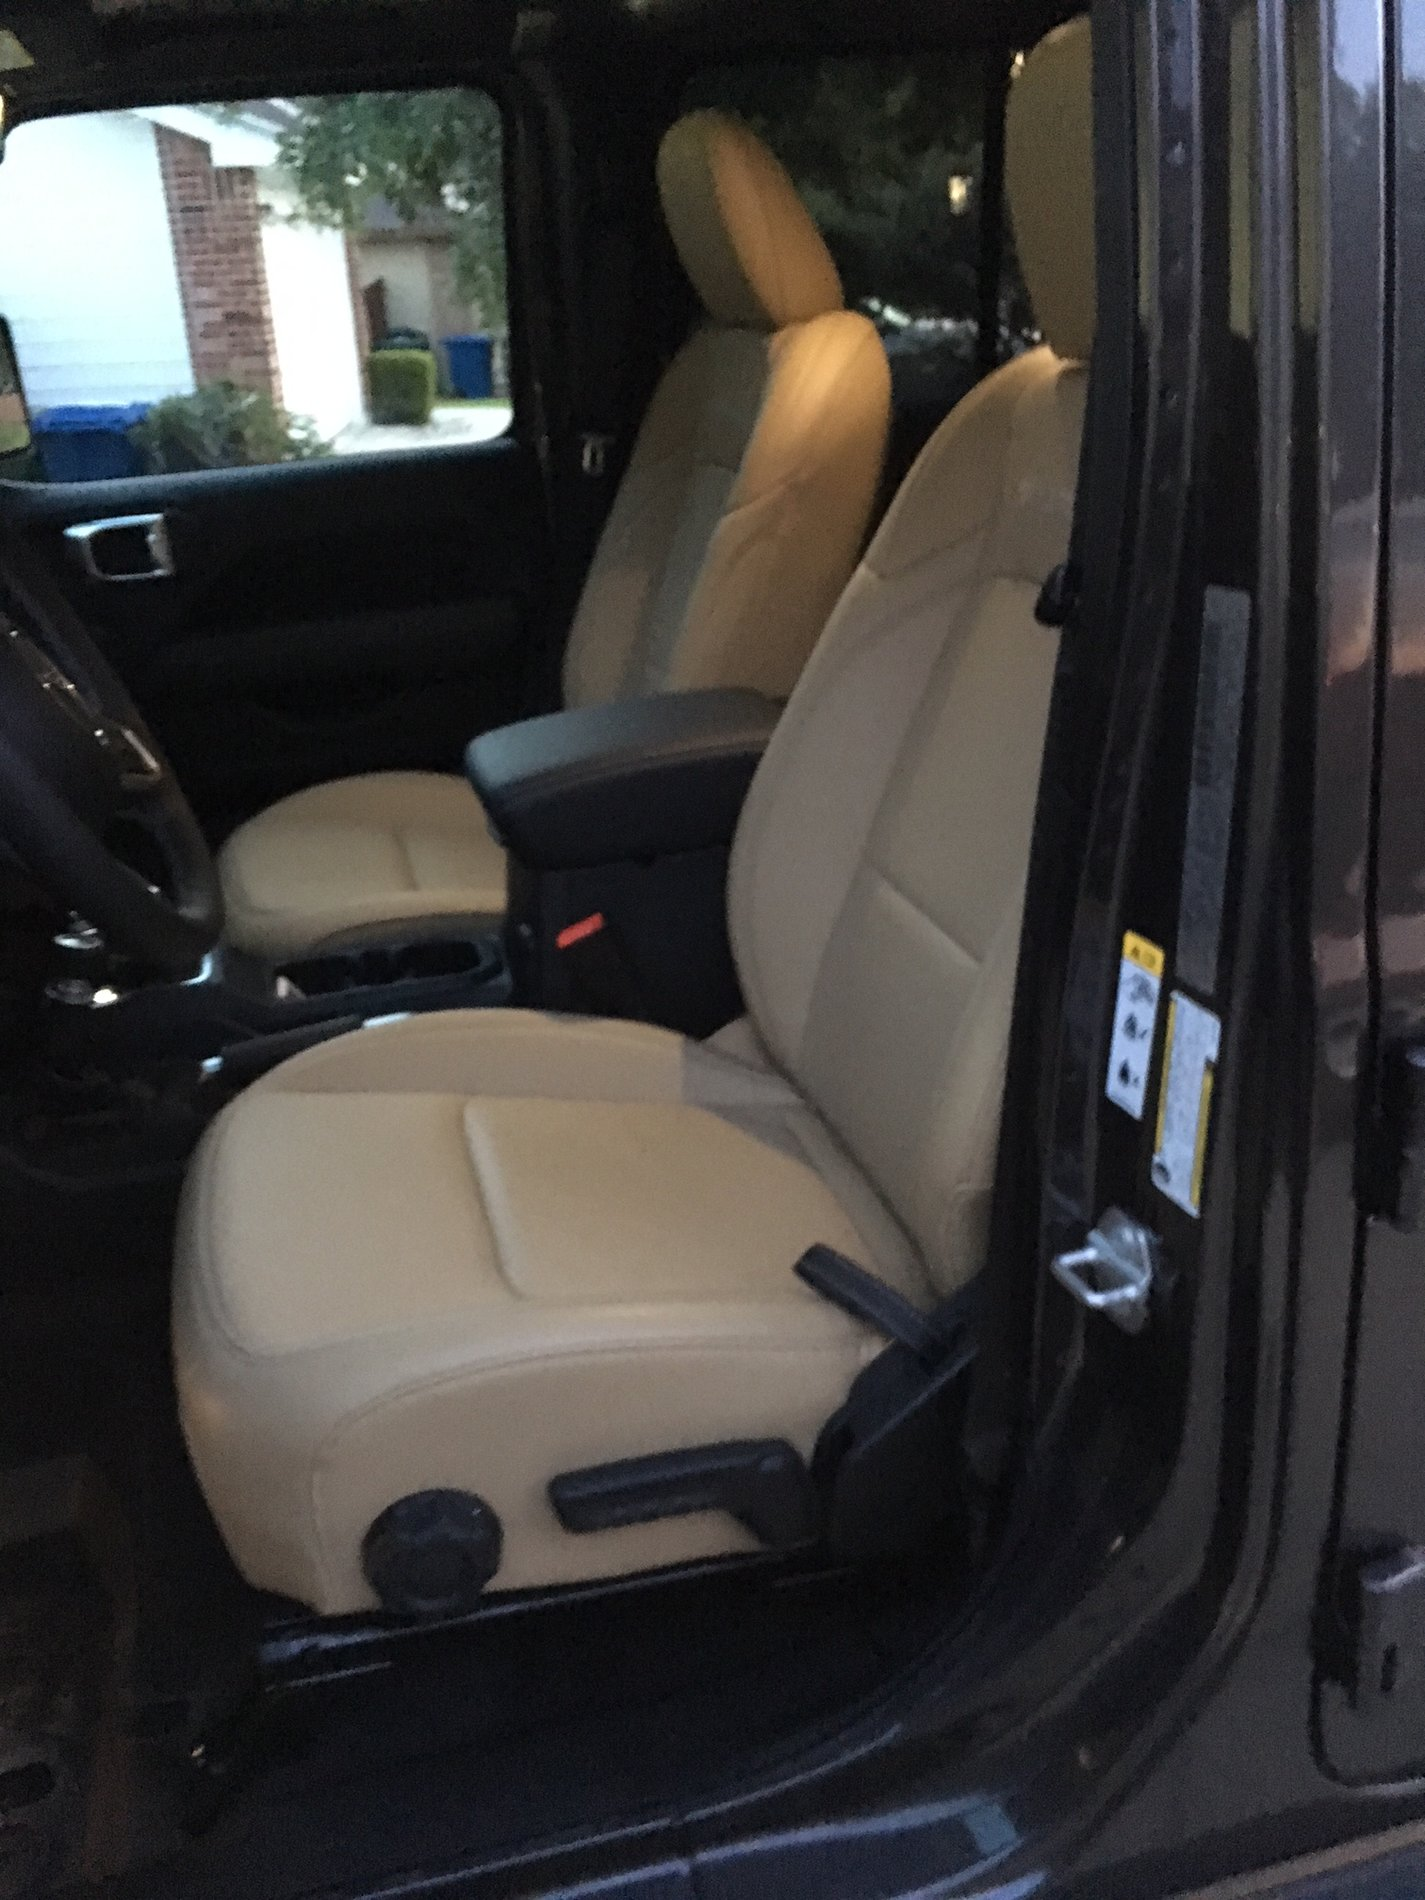 Please Show Me Some Tan Interiors Page 2 2018 Jeep Wrangler Forums Jl Jlu Rubicon Sahara Sport Unlimited Jlwranglerforums Com